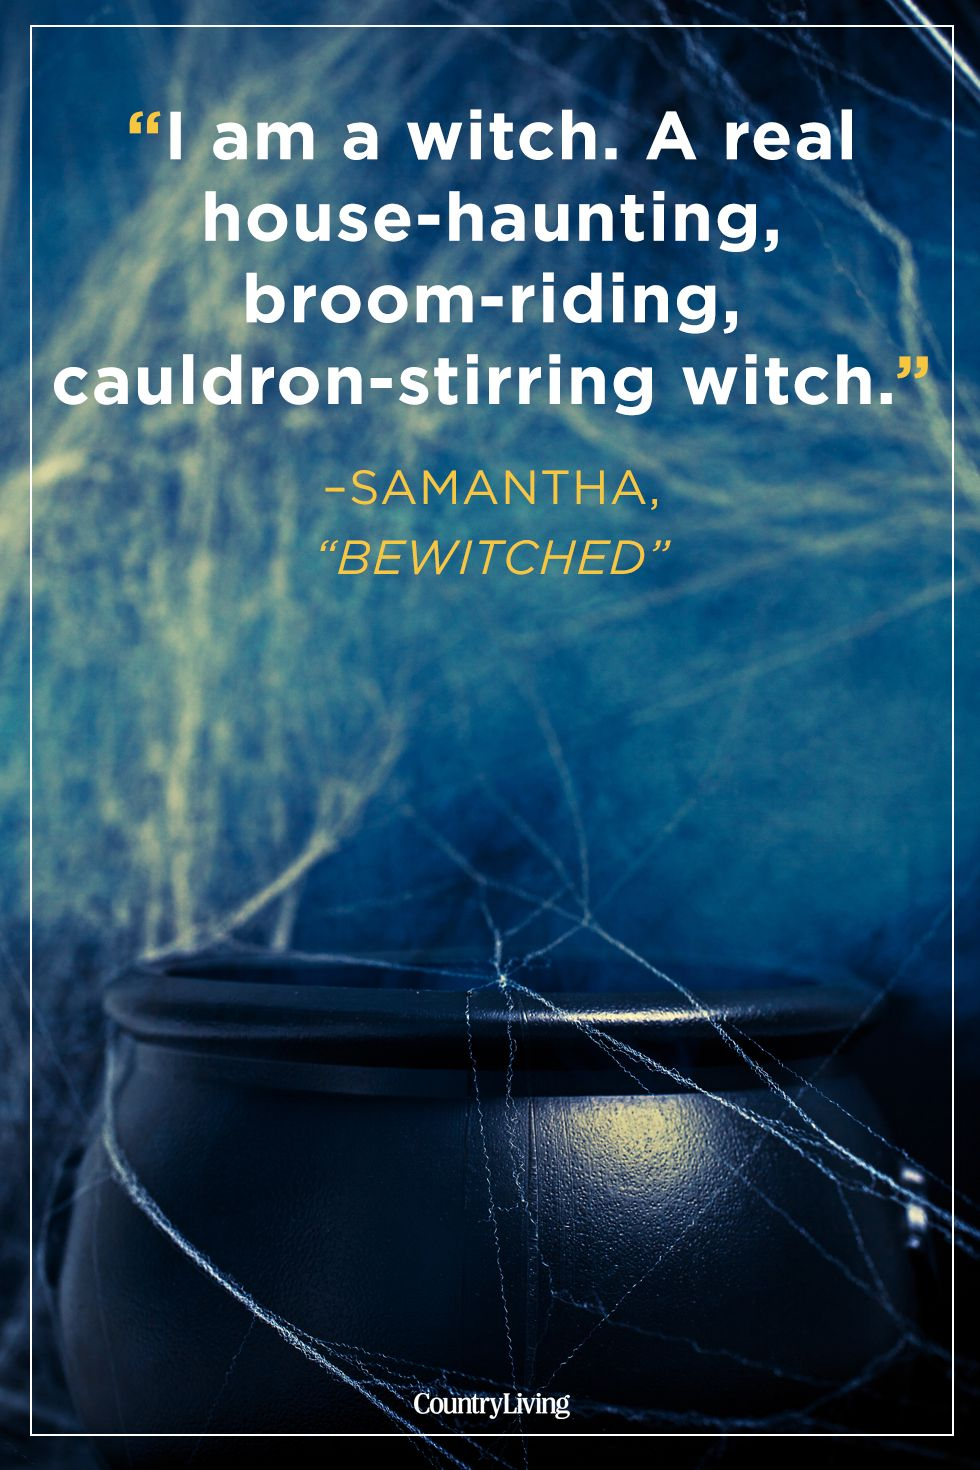 witch quotes samantha bewitched